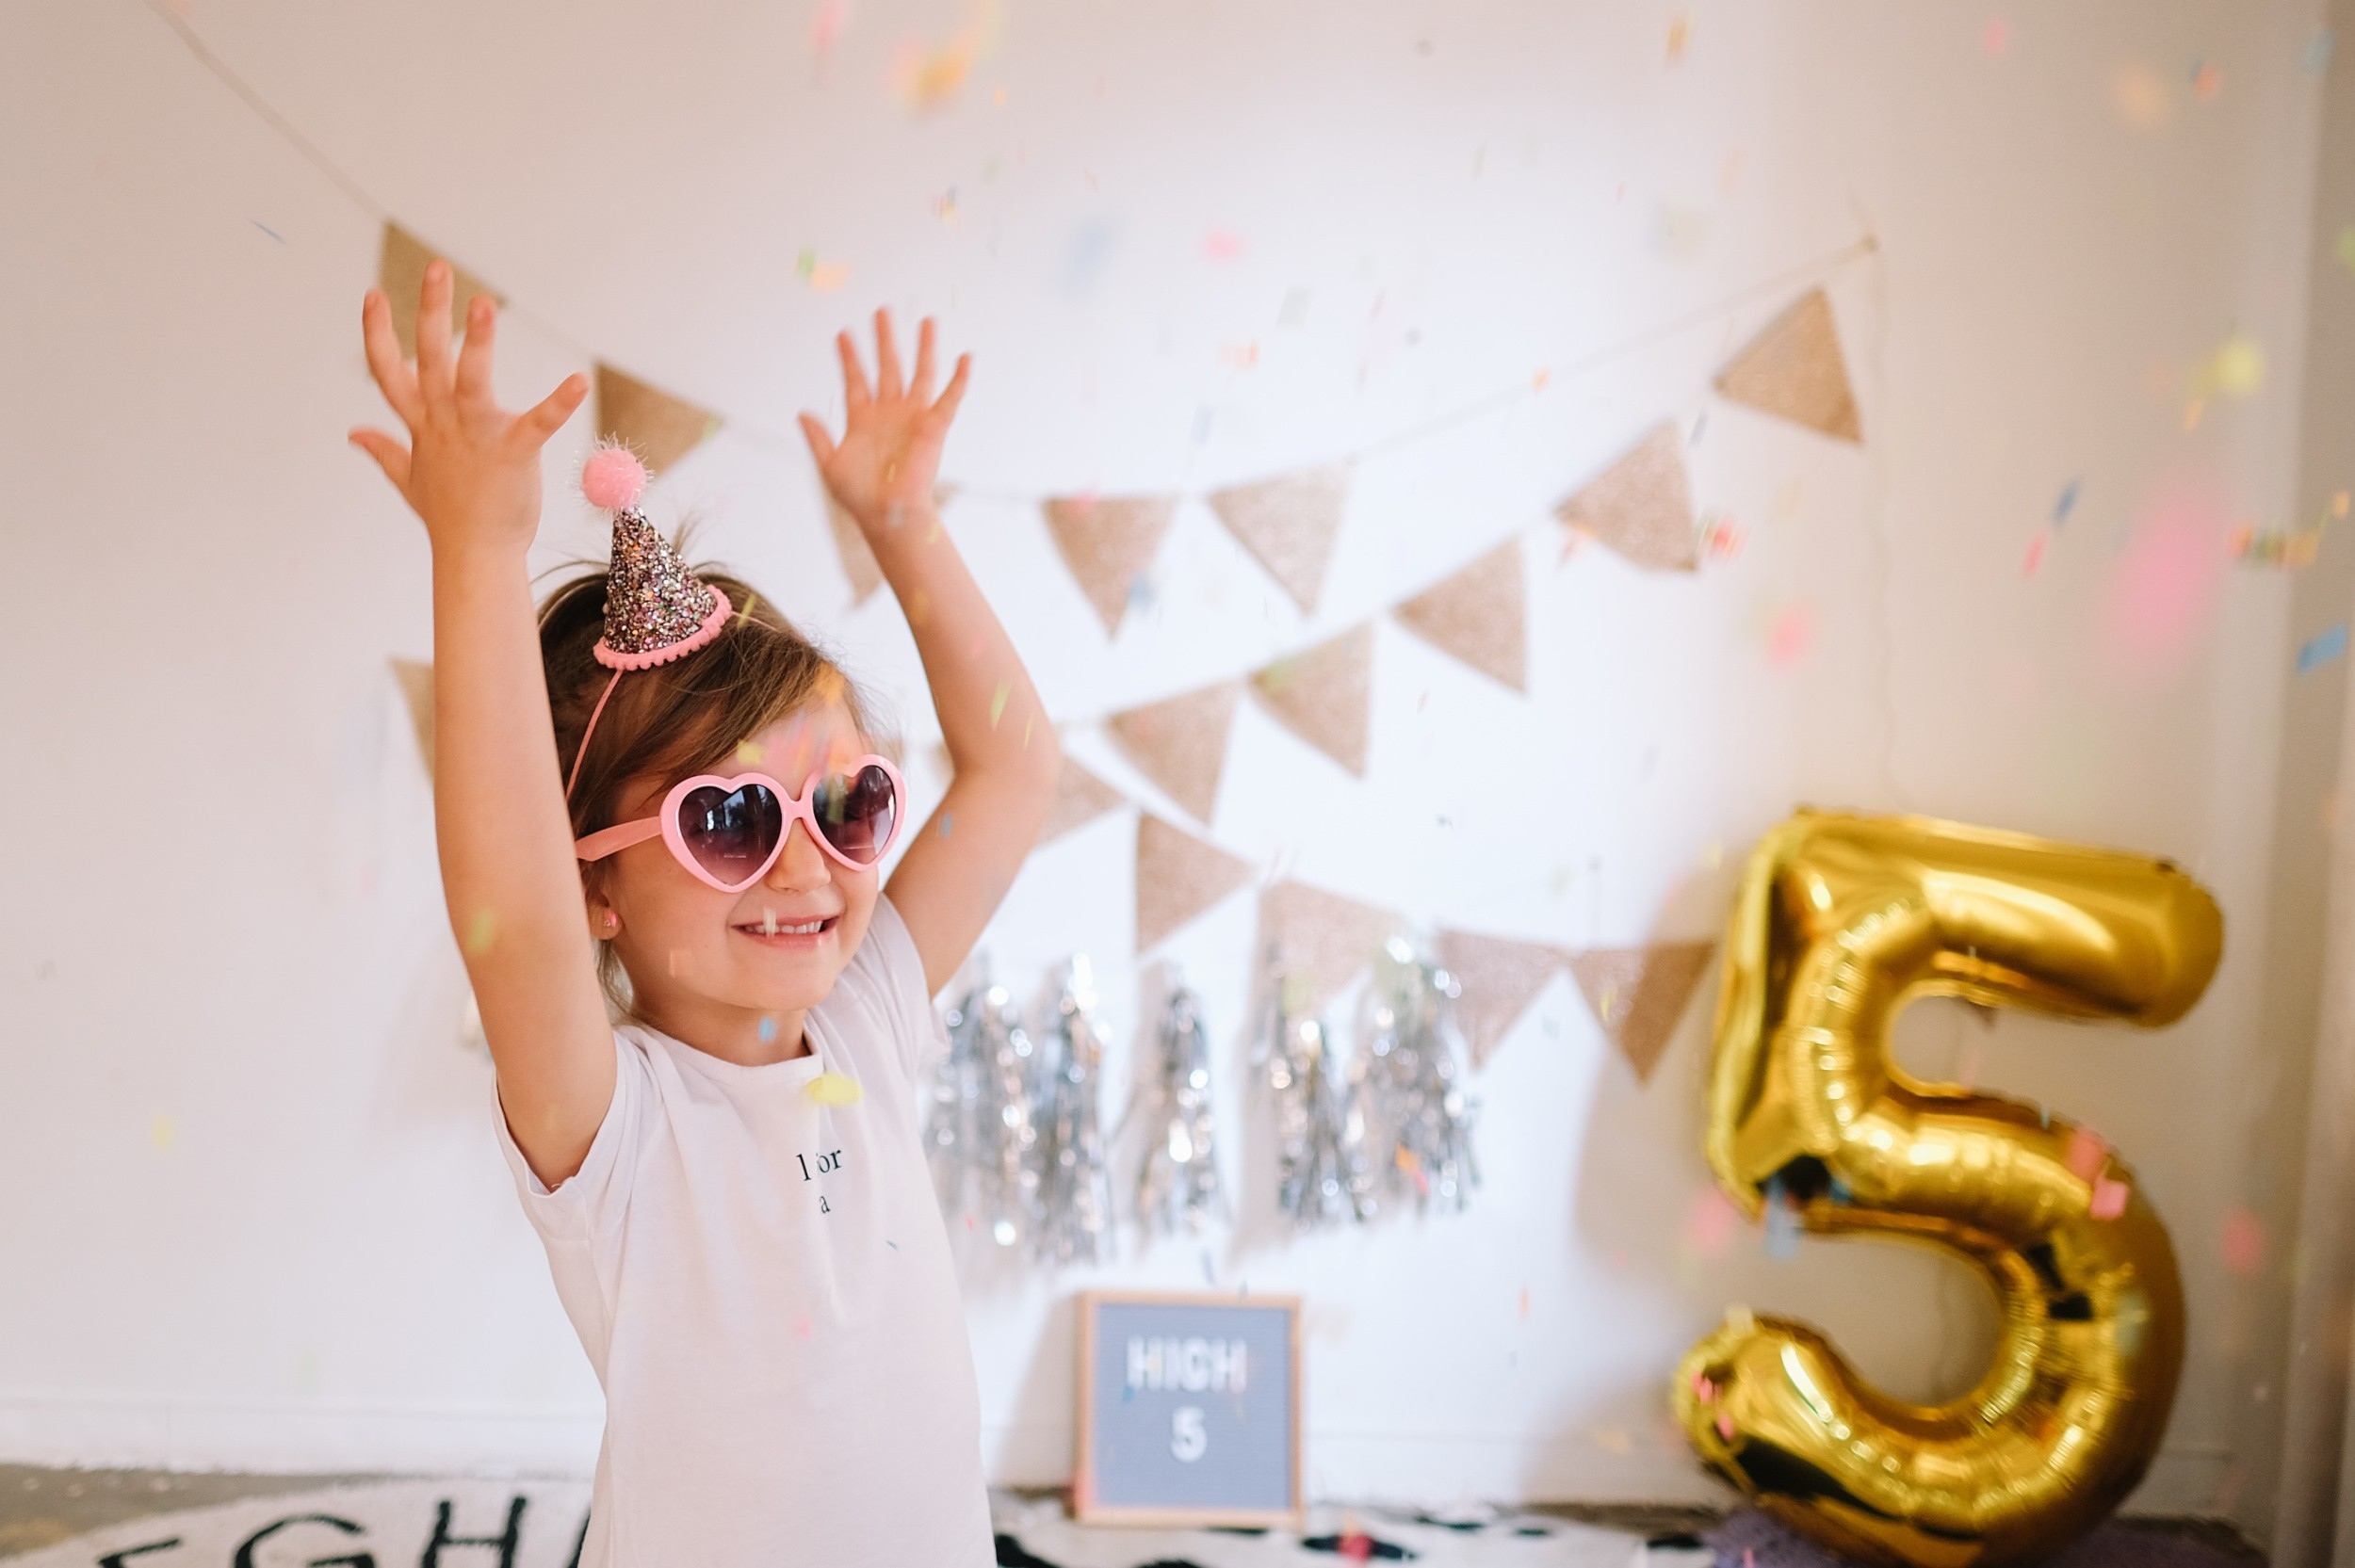 HIGH FIVE celebrations for our Lia on her 5th birthday!